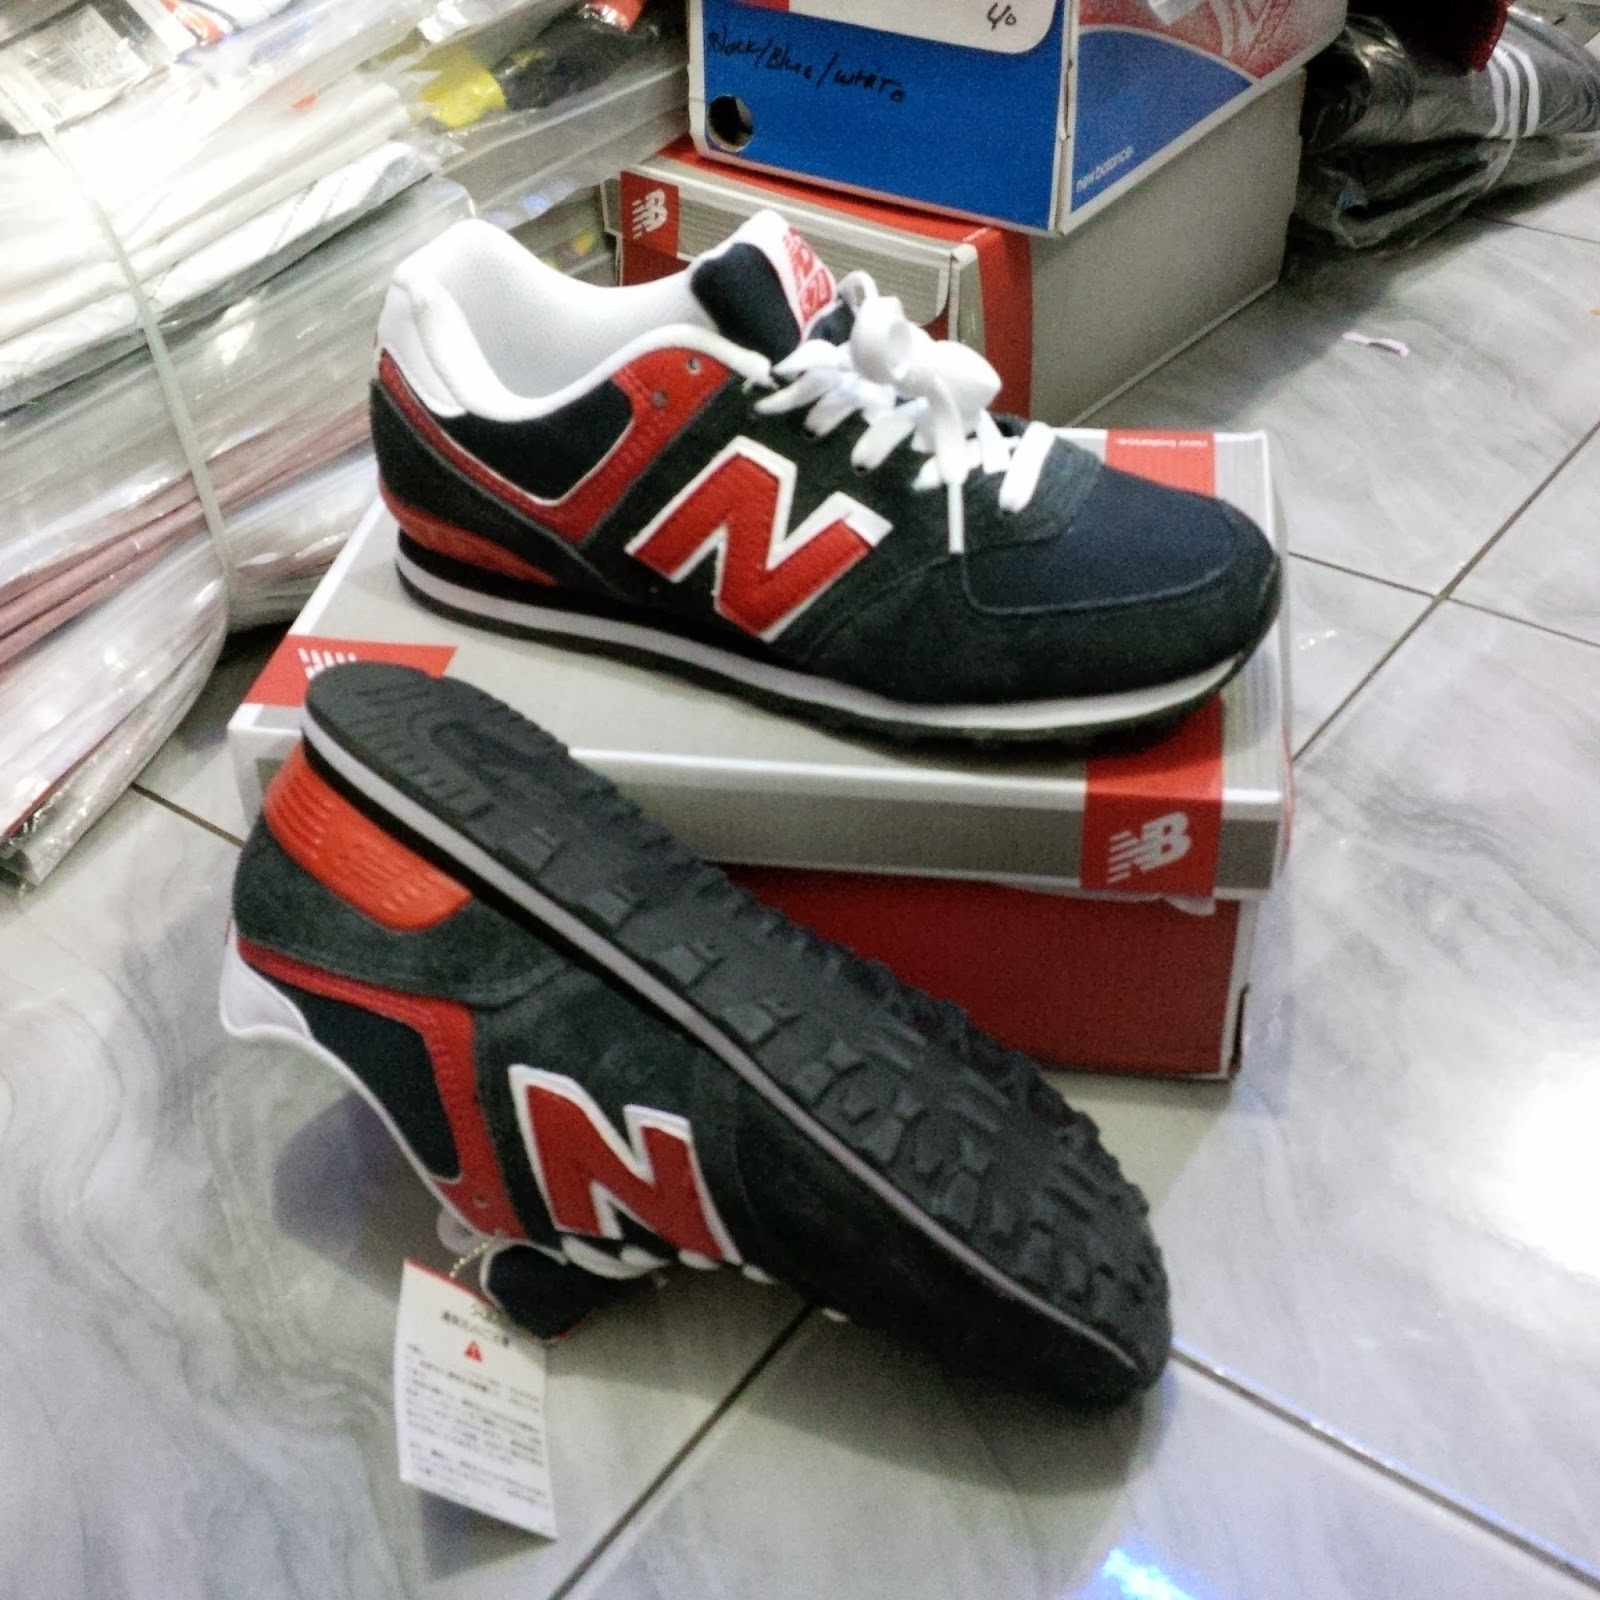 cf78061feba SEPATU NEW BALANCE MEN MADE IN VIETNAM 574 CLASSIC ABU/OREN/PUTIH ...